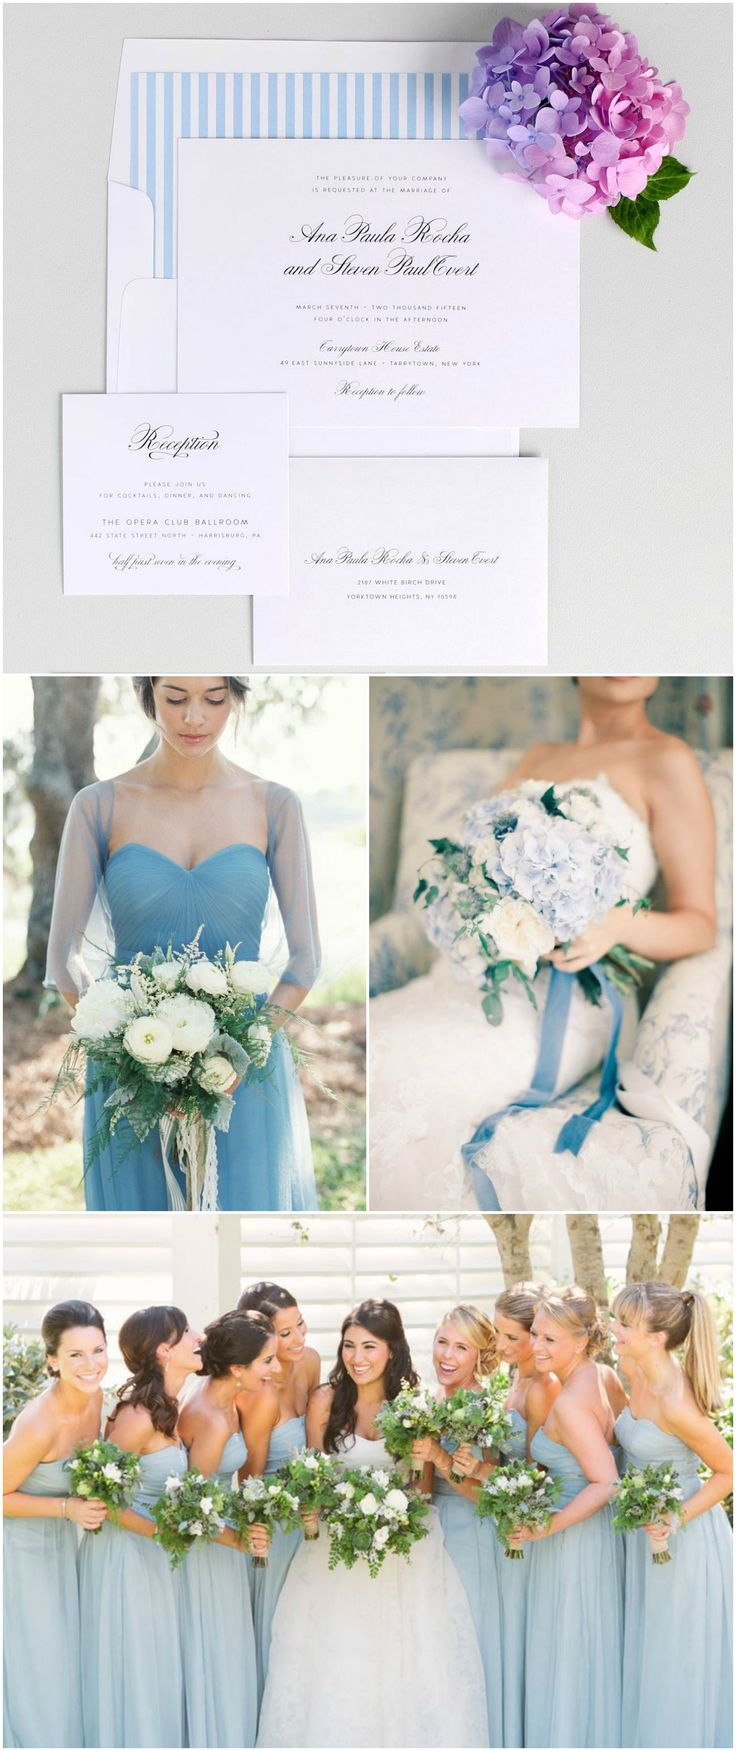 66 best My Wedding images on Pinterest | Weddings, Bridal hairstyles ...